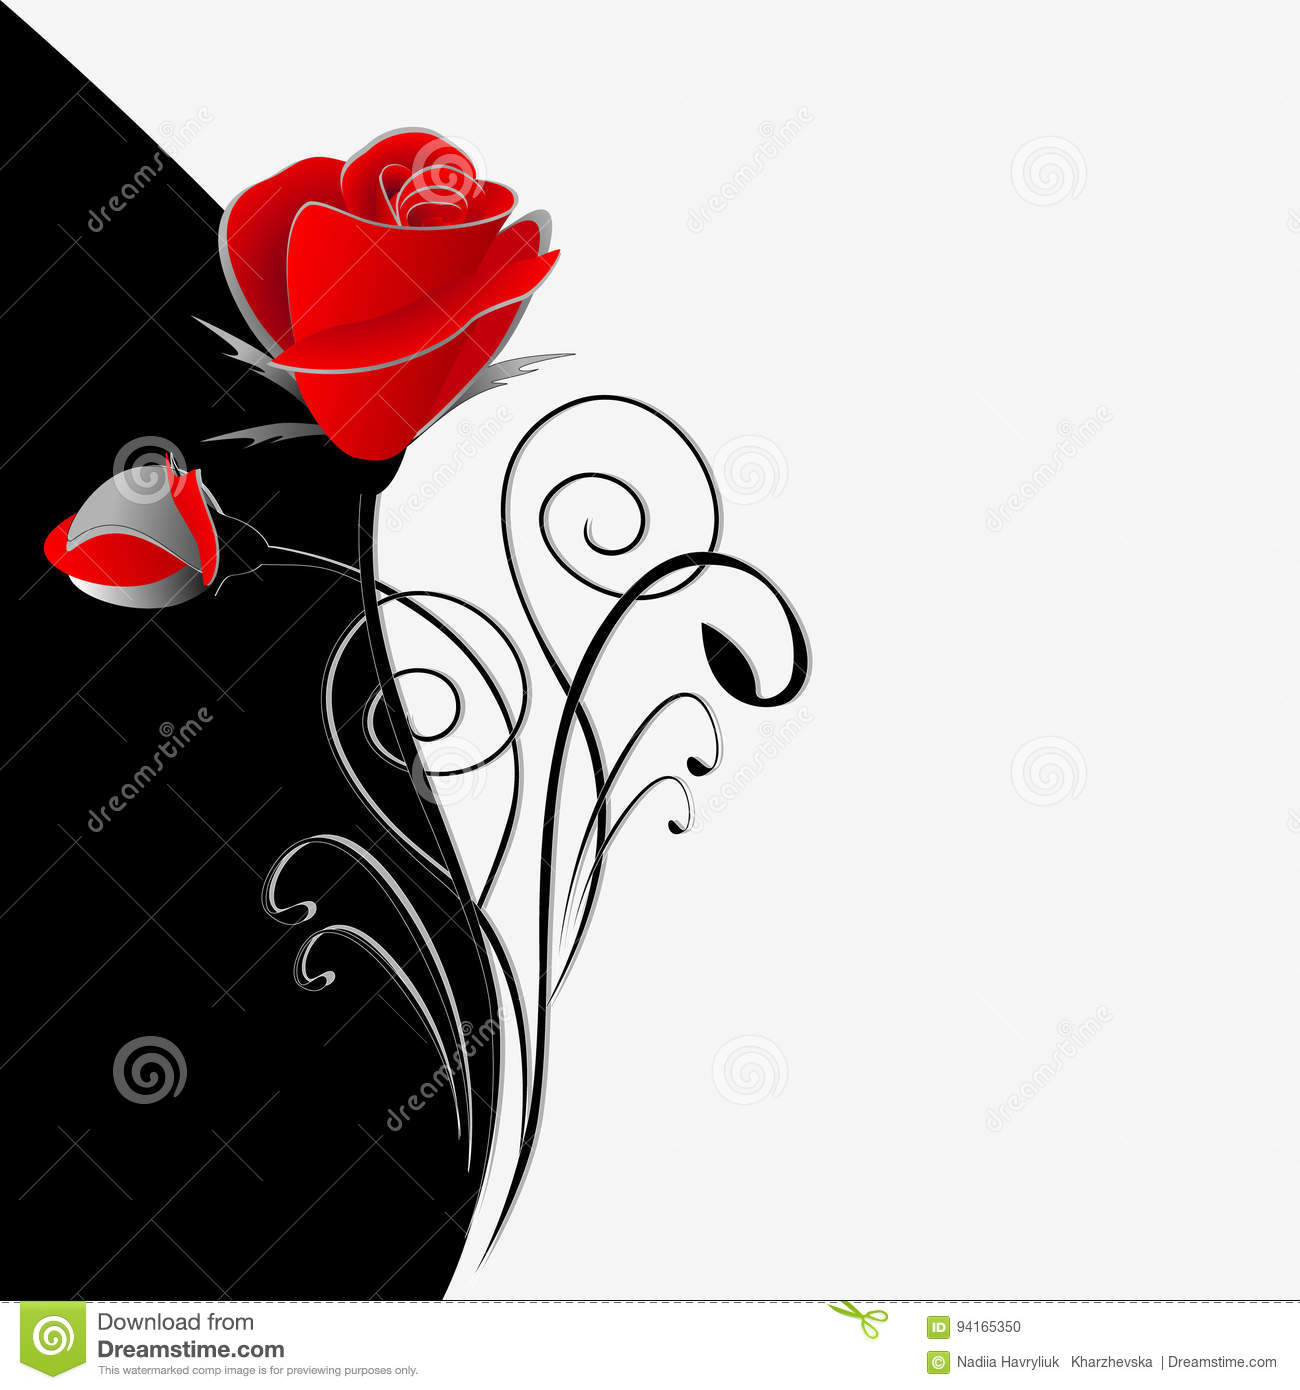 Illustration of beauty black and white floral background with a